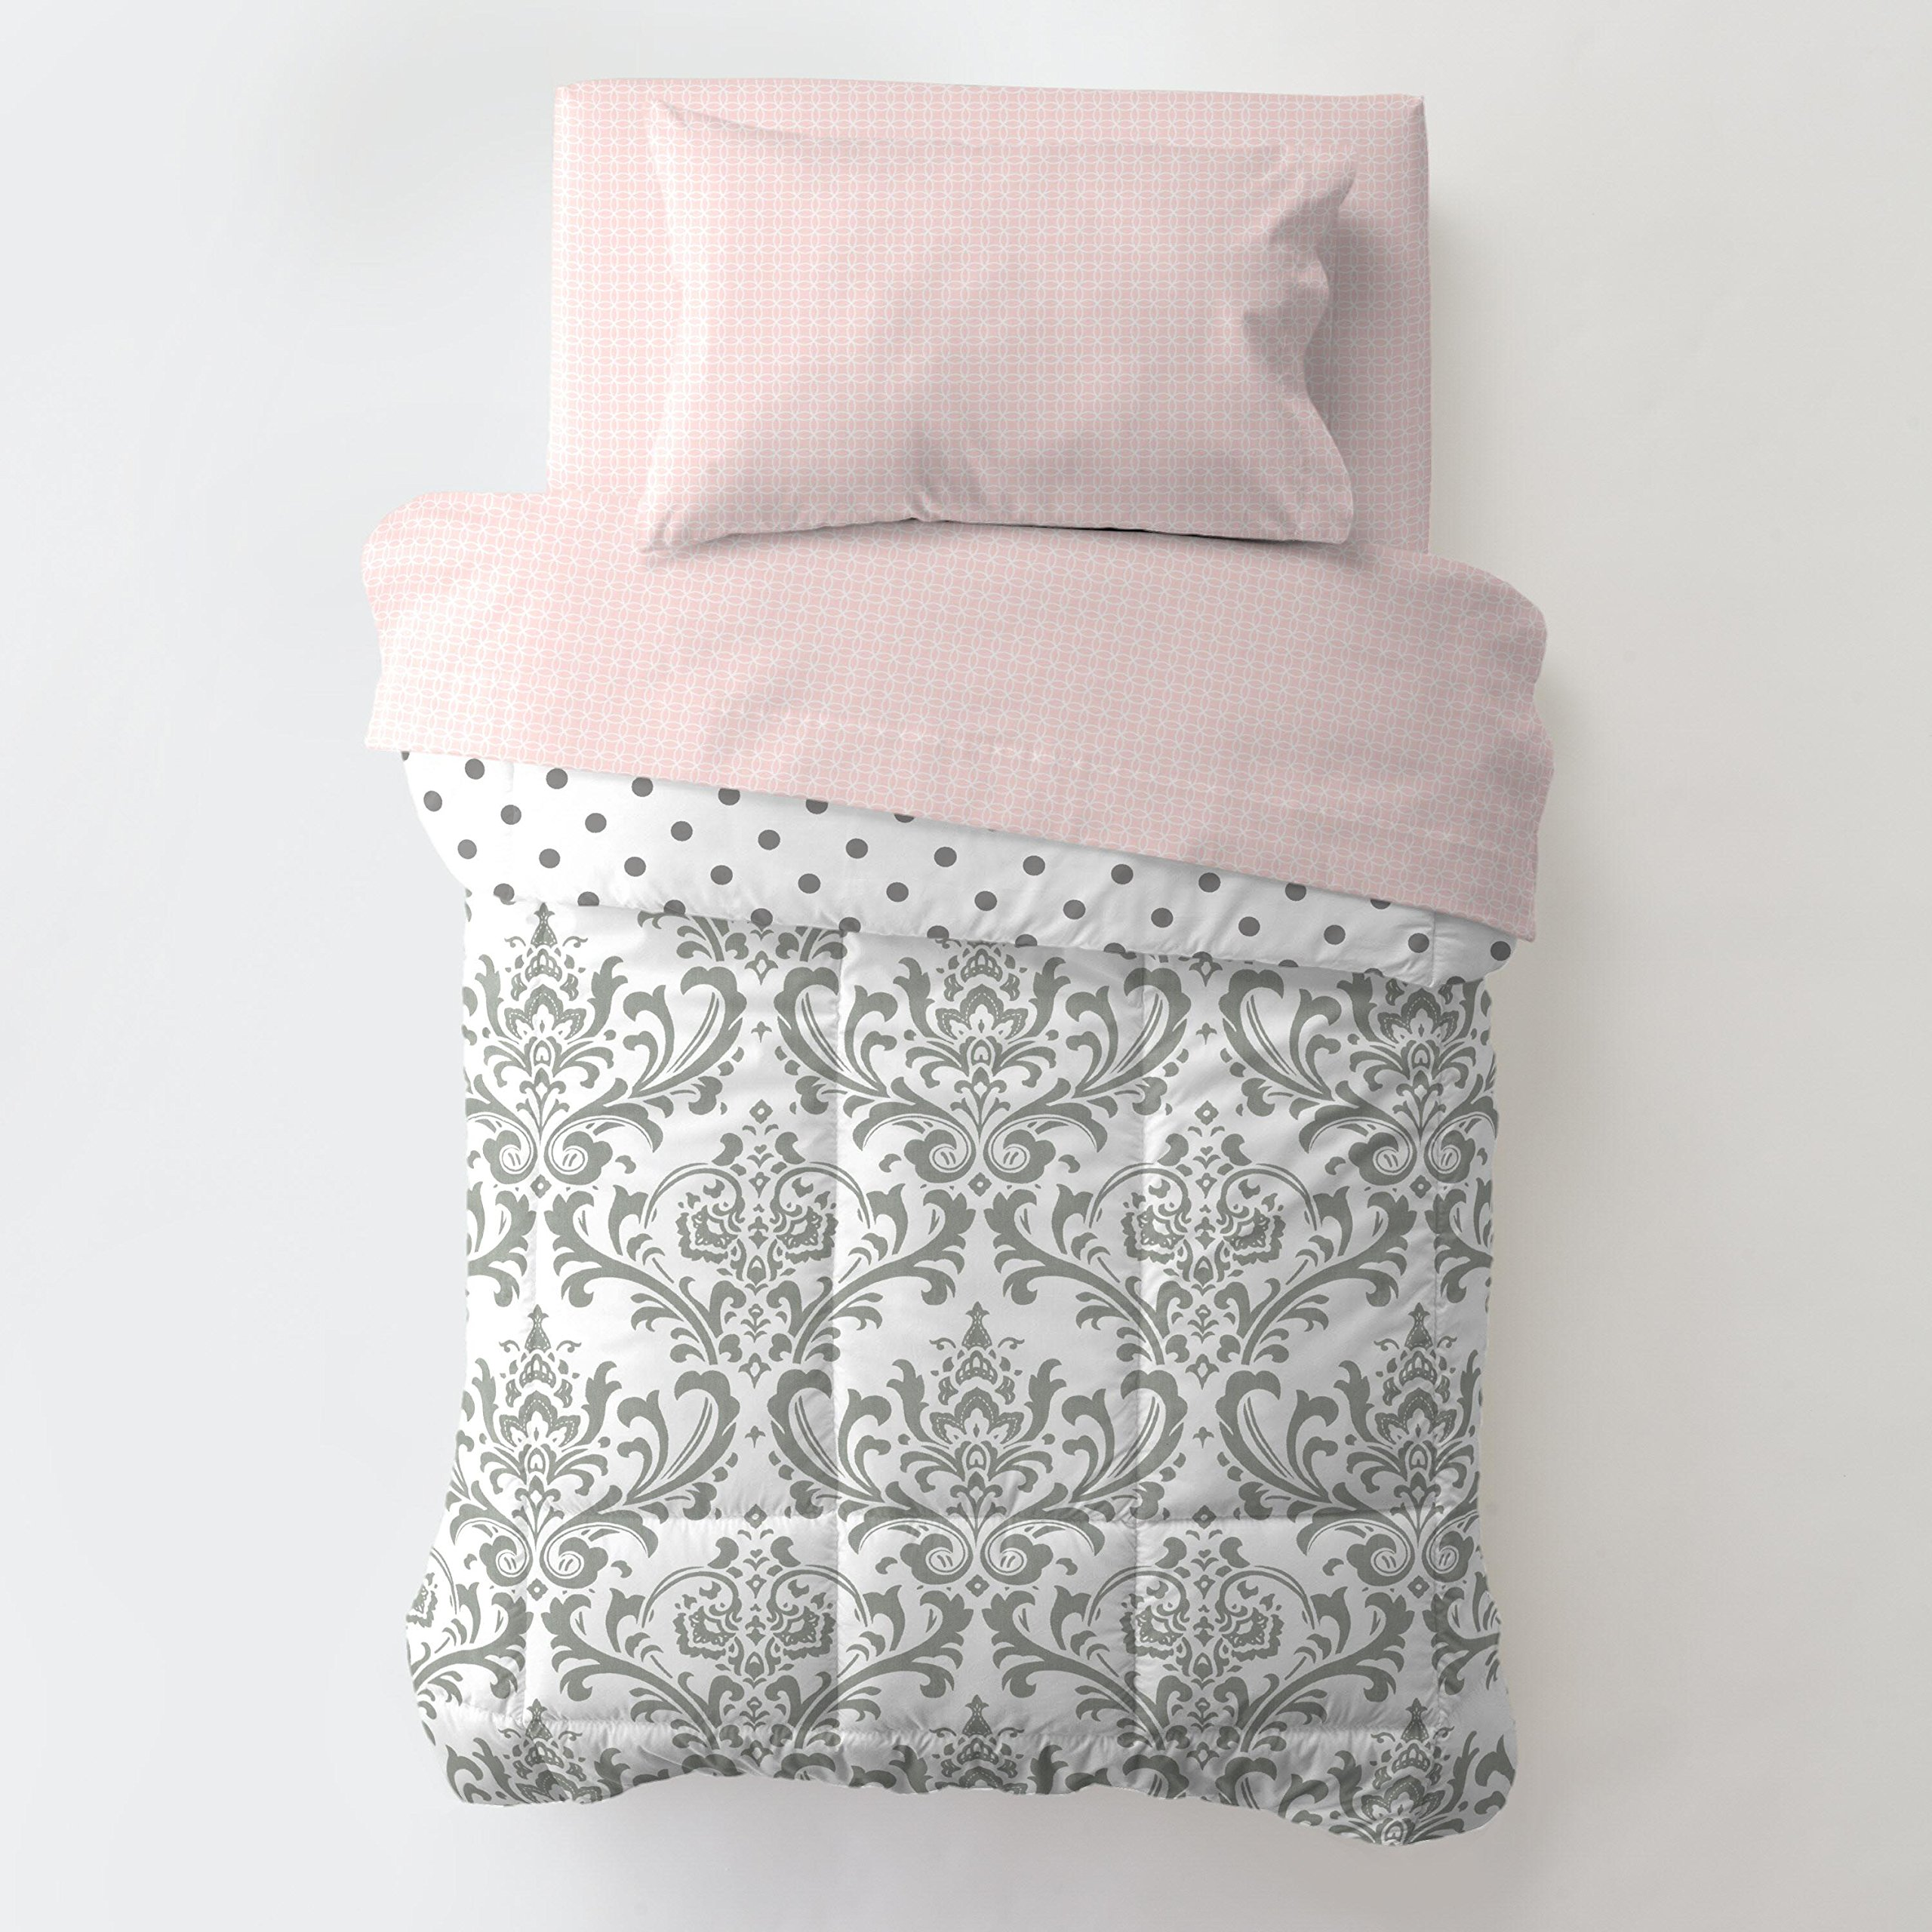 Carousel Designs Pink and Gray Traditions Toddler Bed Comforter